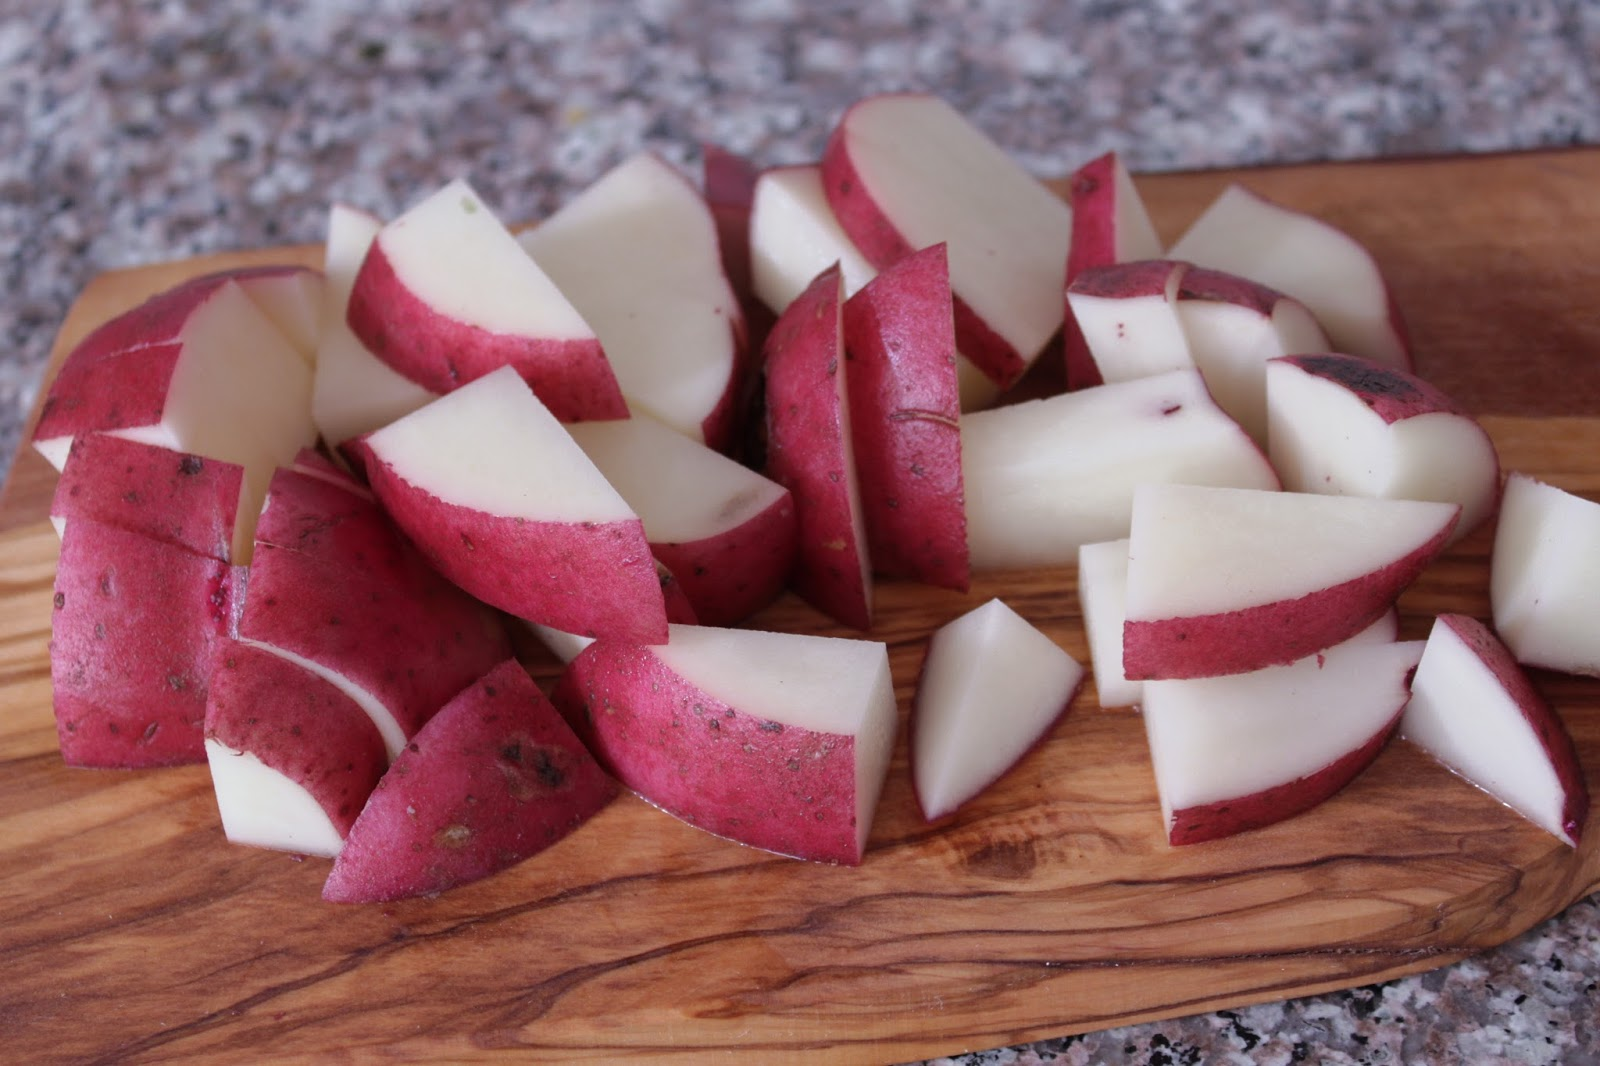 Greek style red potatoes